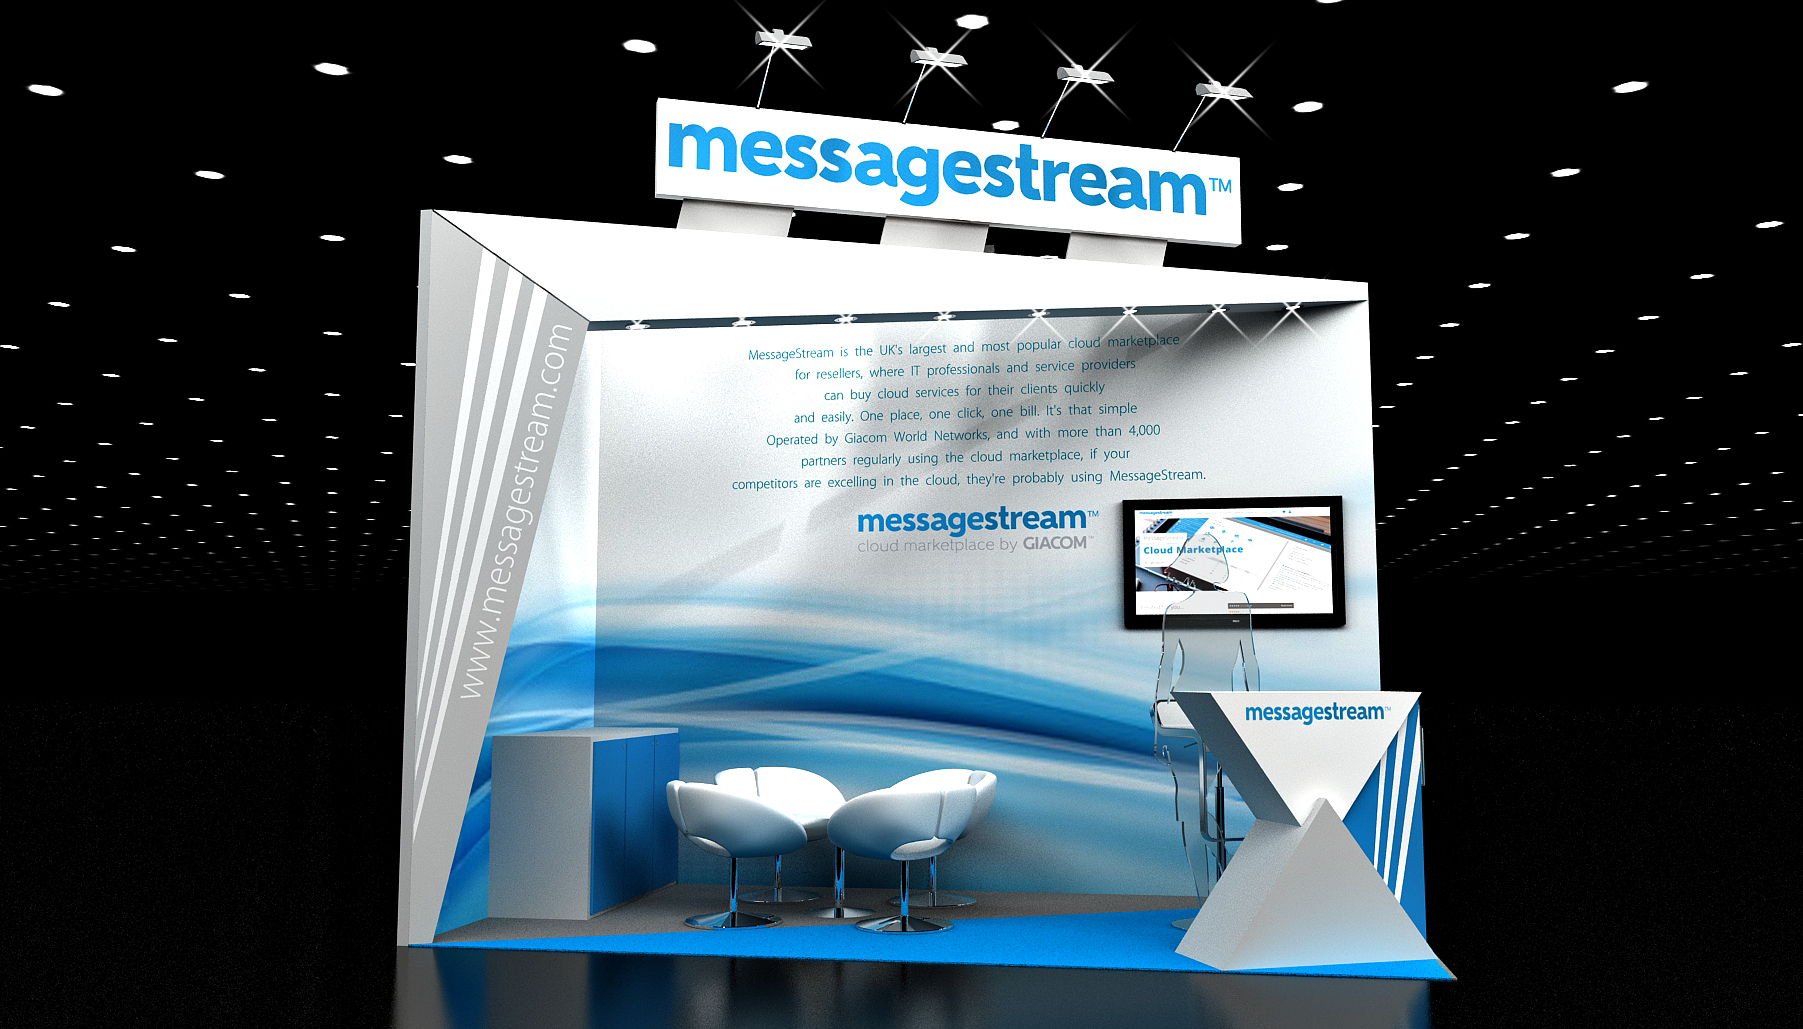 Messagestream - 2 open sides.jpg